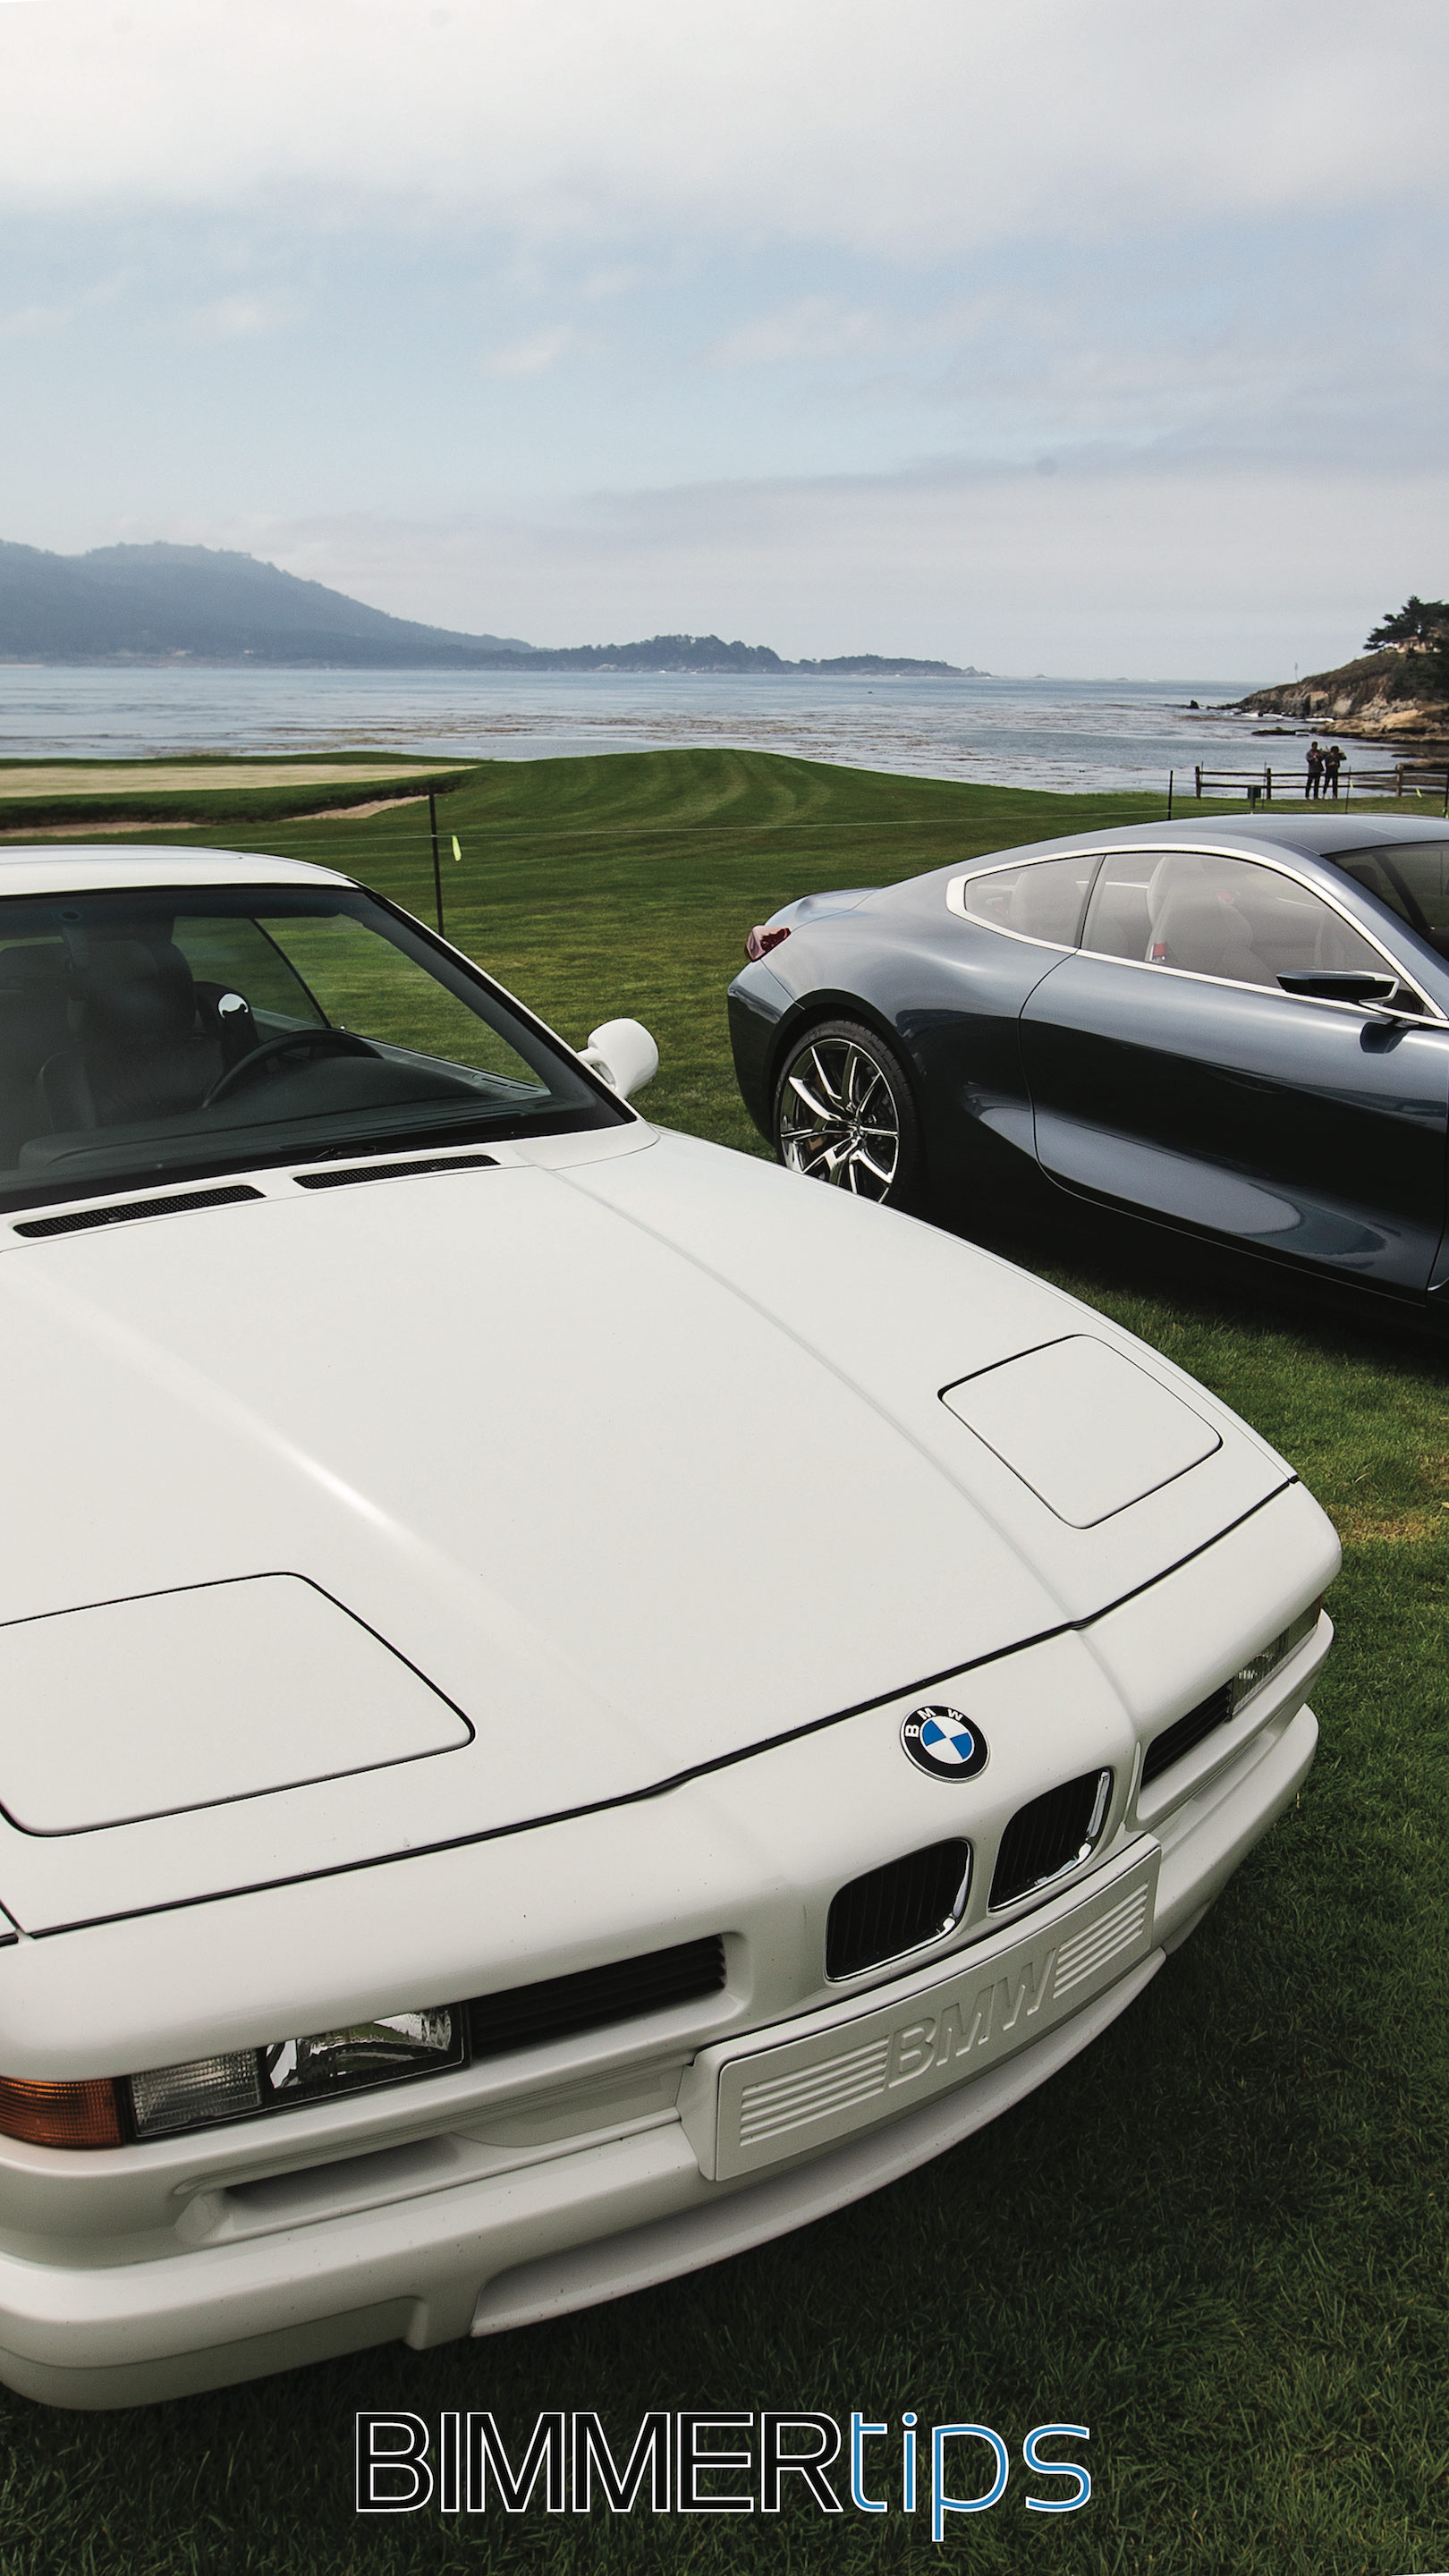 BMW F30 8 series wallpaper iPhone android